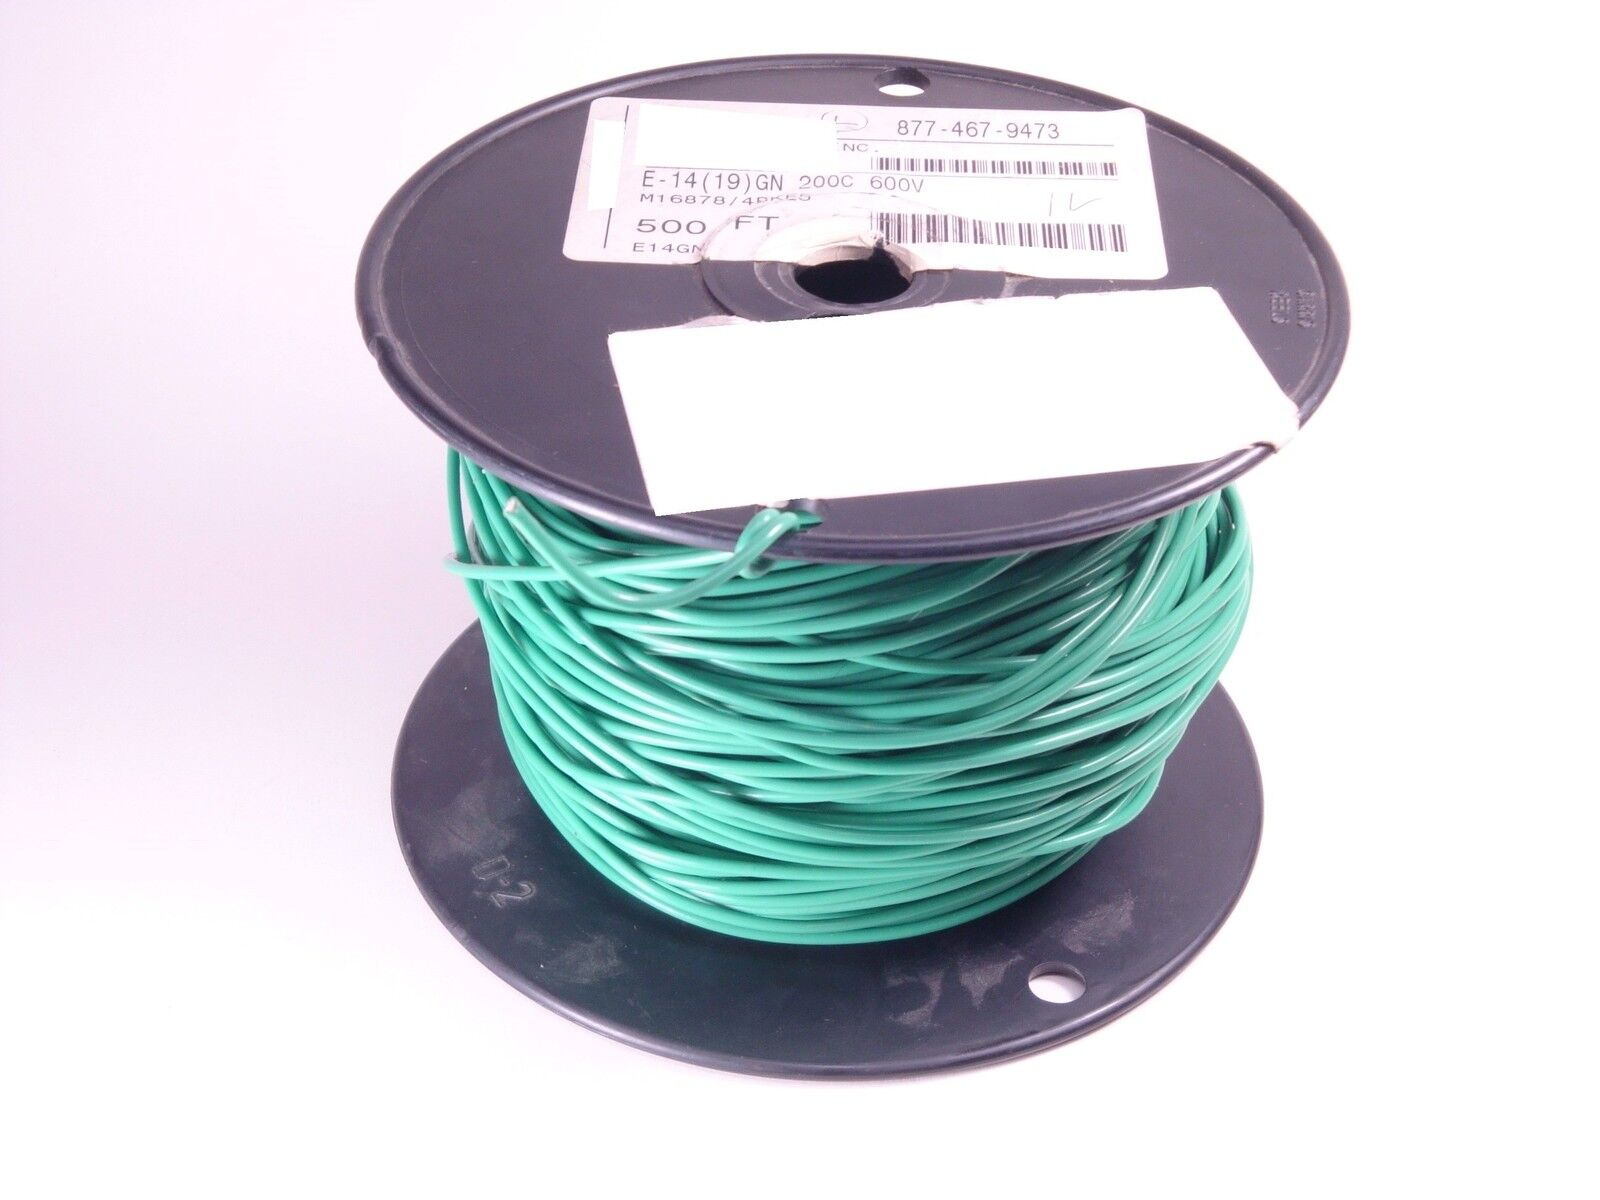 M16878 4-BKE5 MIL PTFE Extruded Hookup Wire 14 AWG 19 X 27 Green 380' Partial